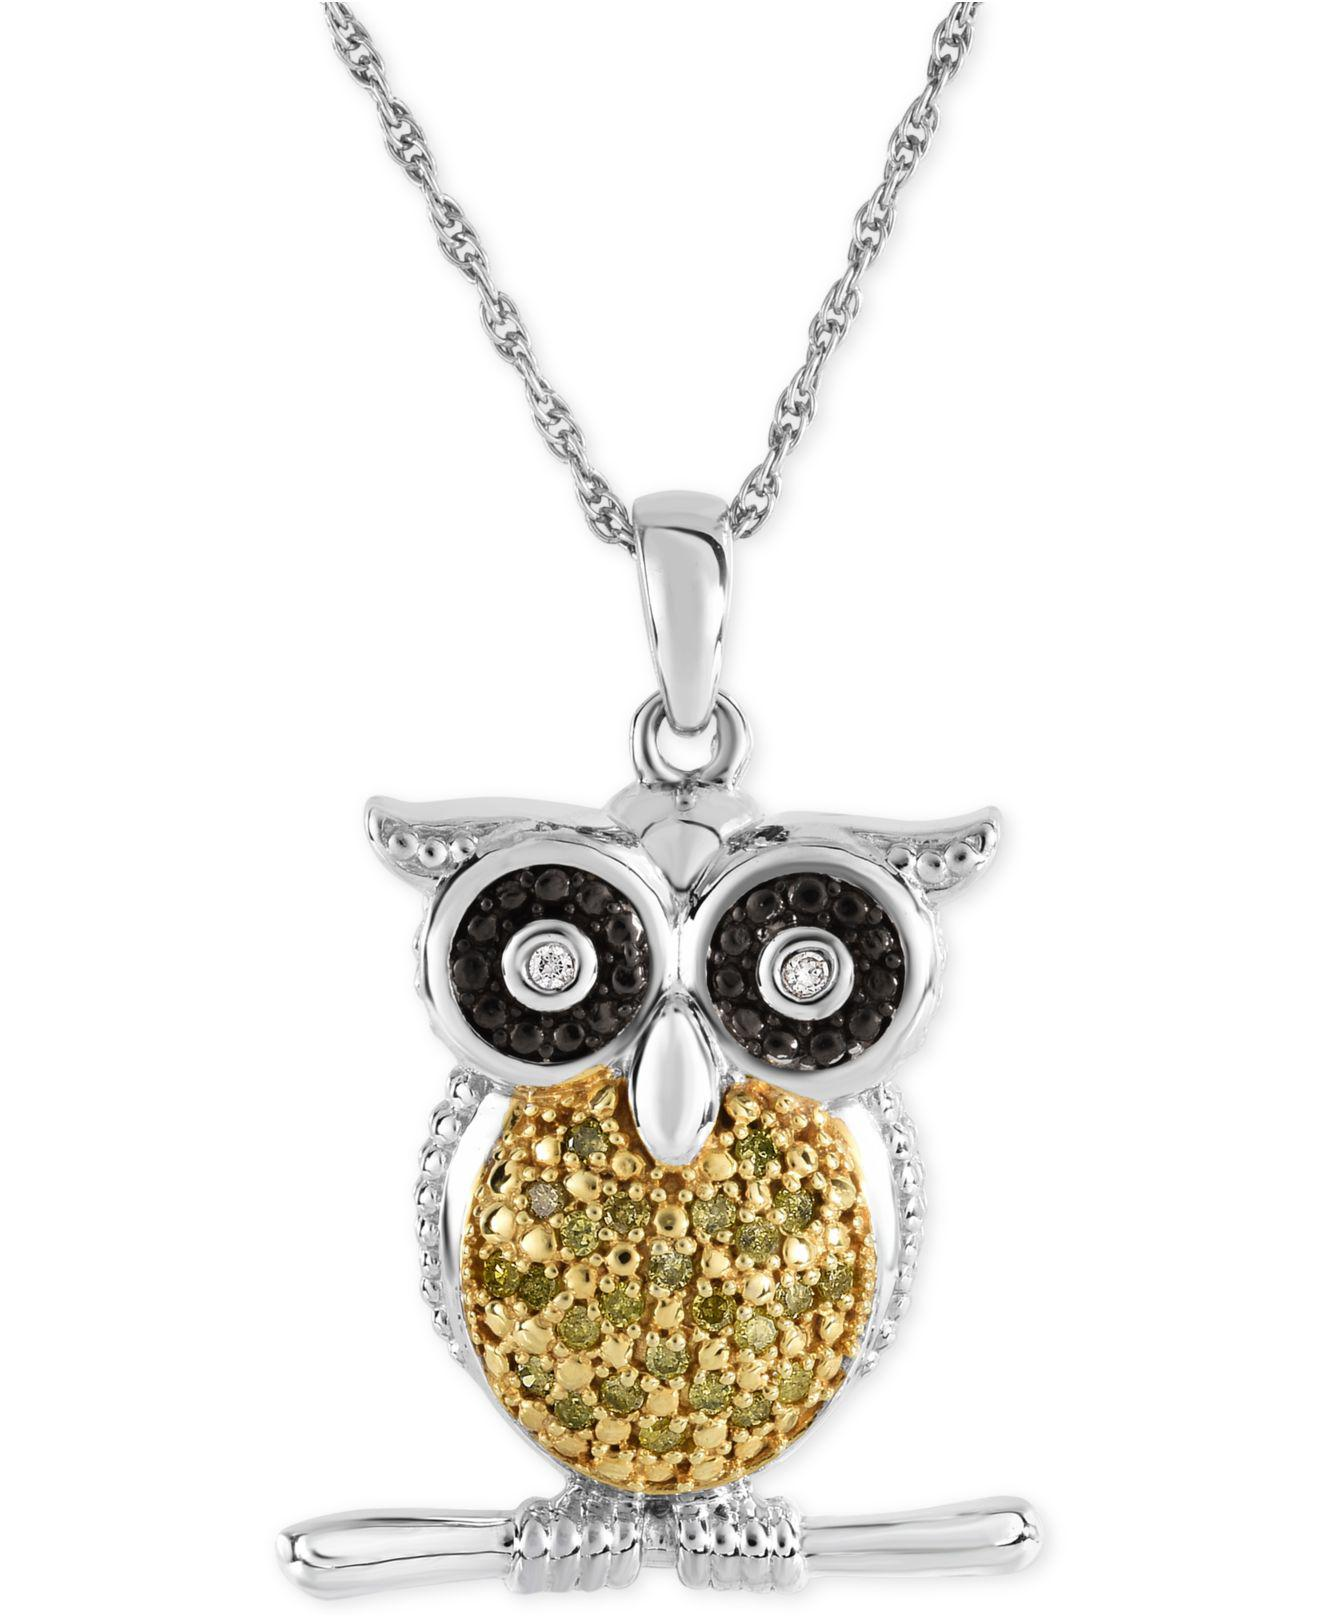 rack necklace product pendant crystal shop nordstrom of nadri image owl